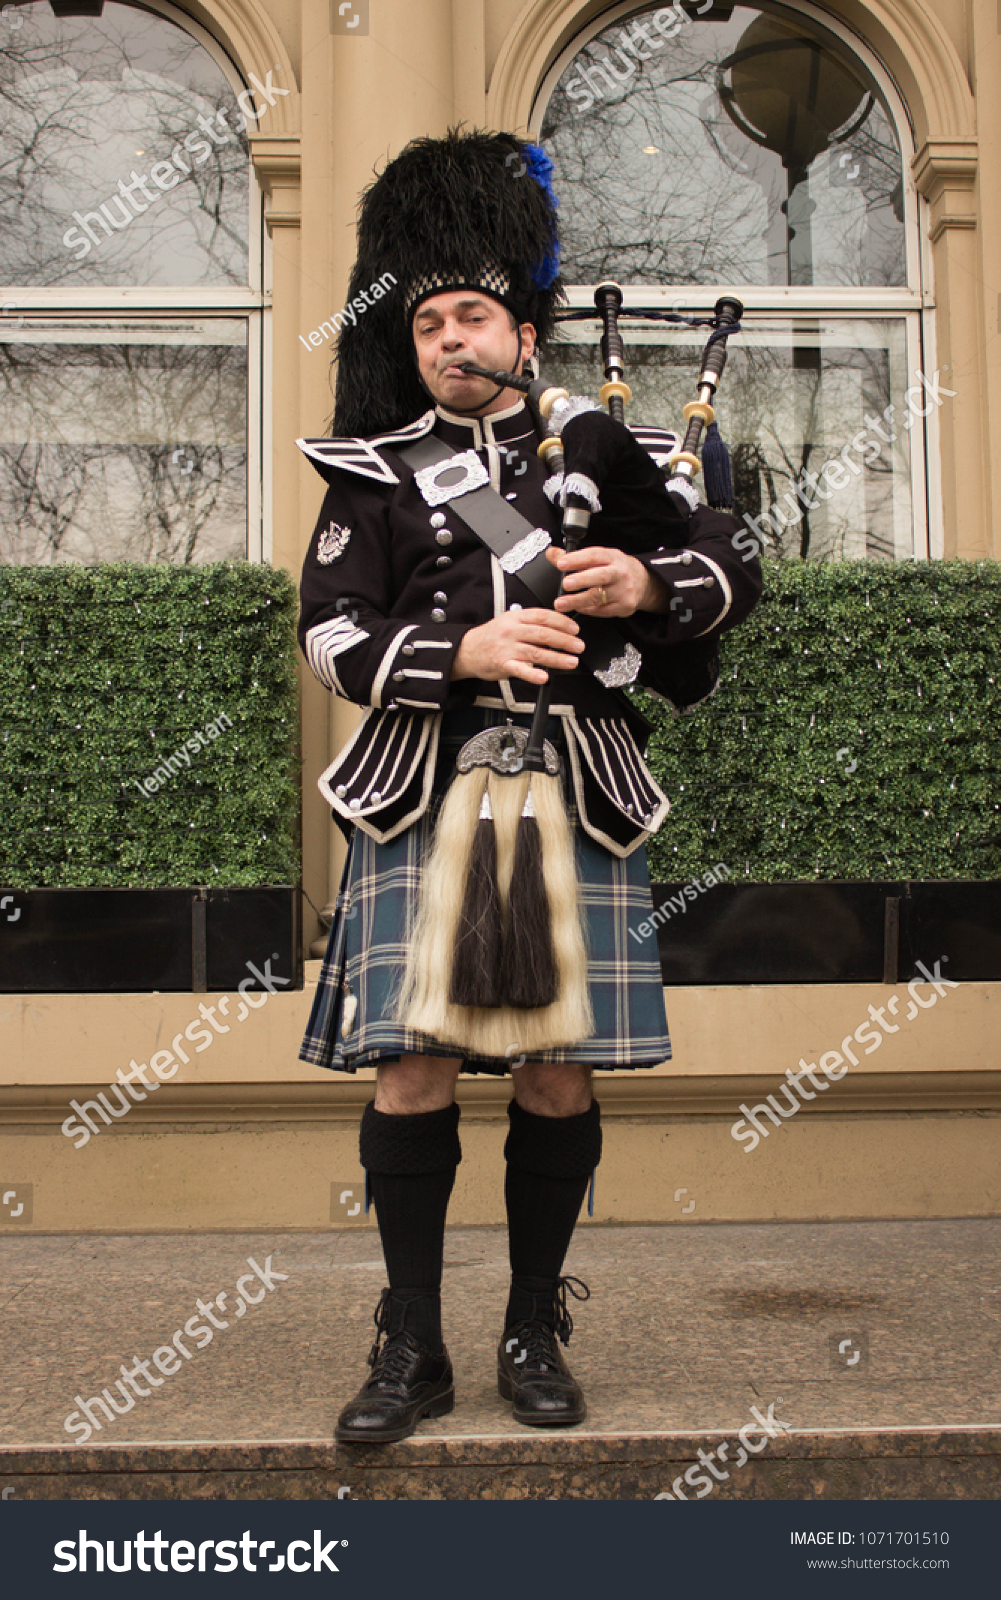 stock-photo-glasgow-scotland-april-bagpi